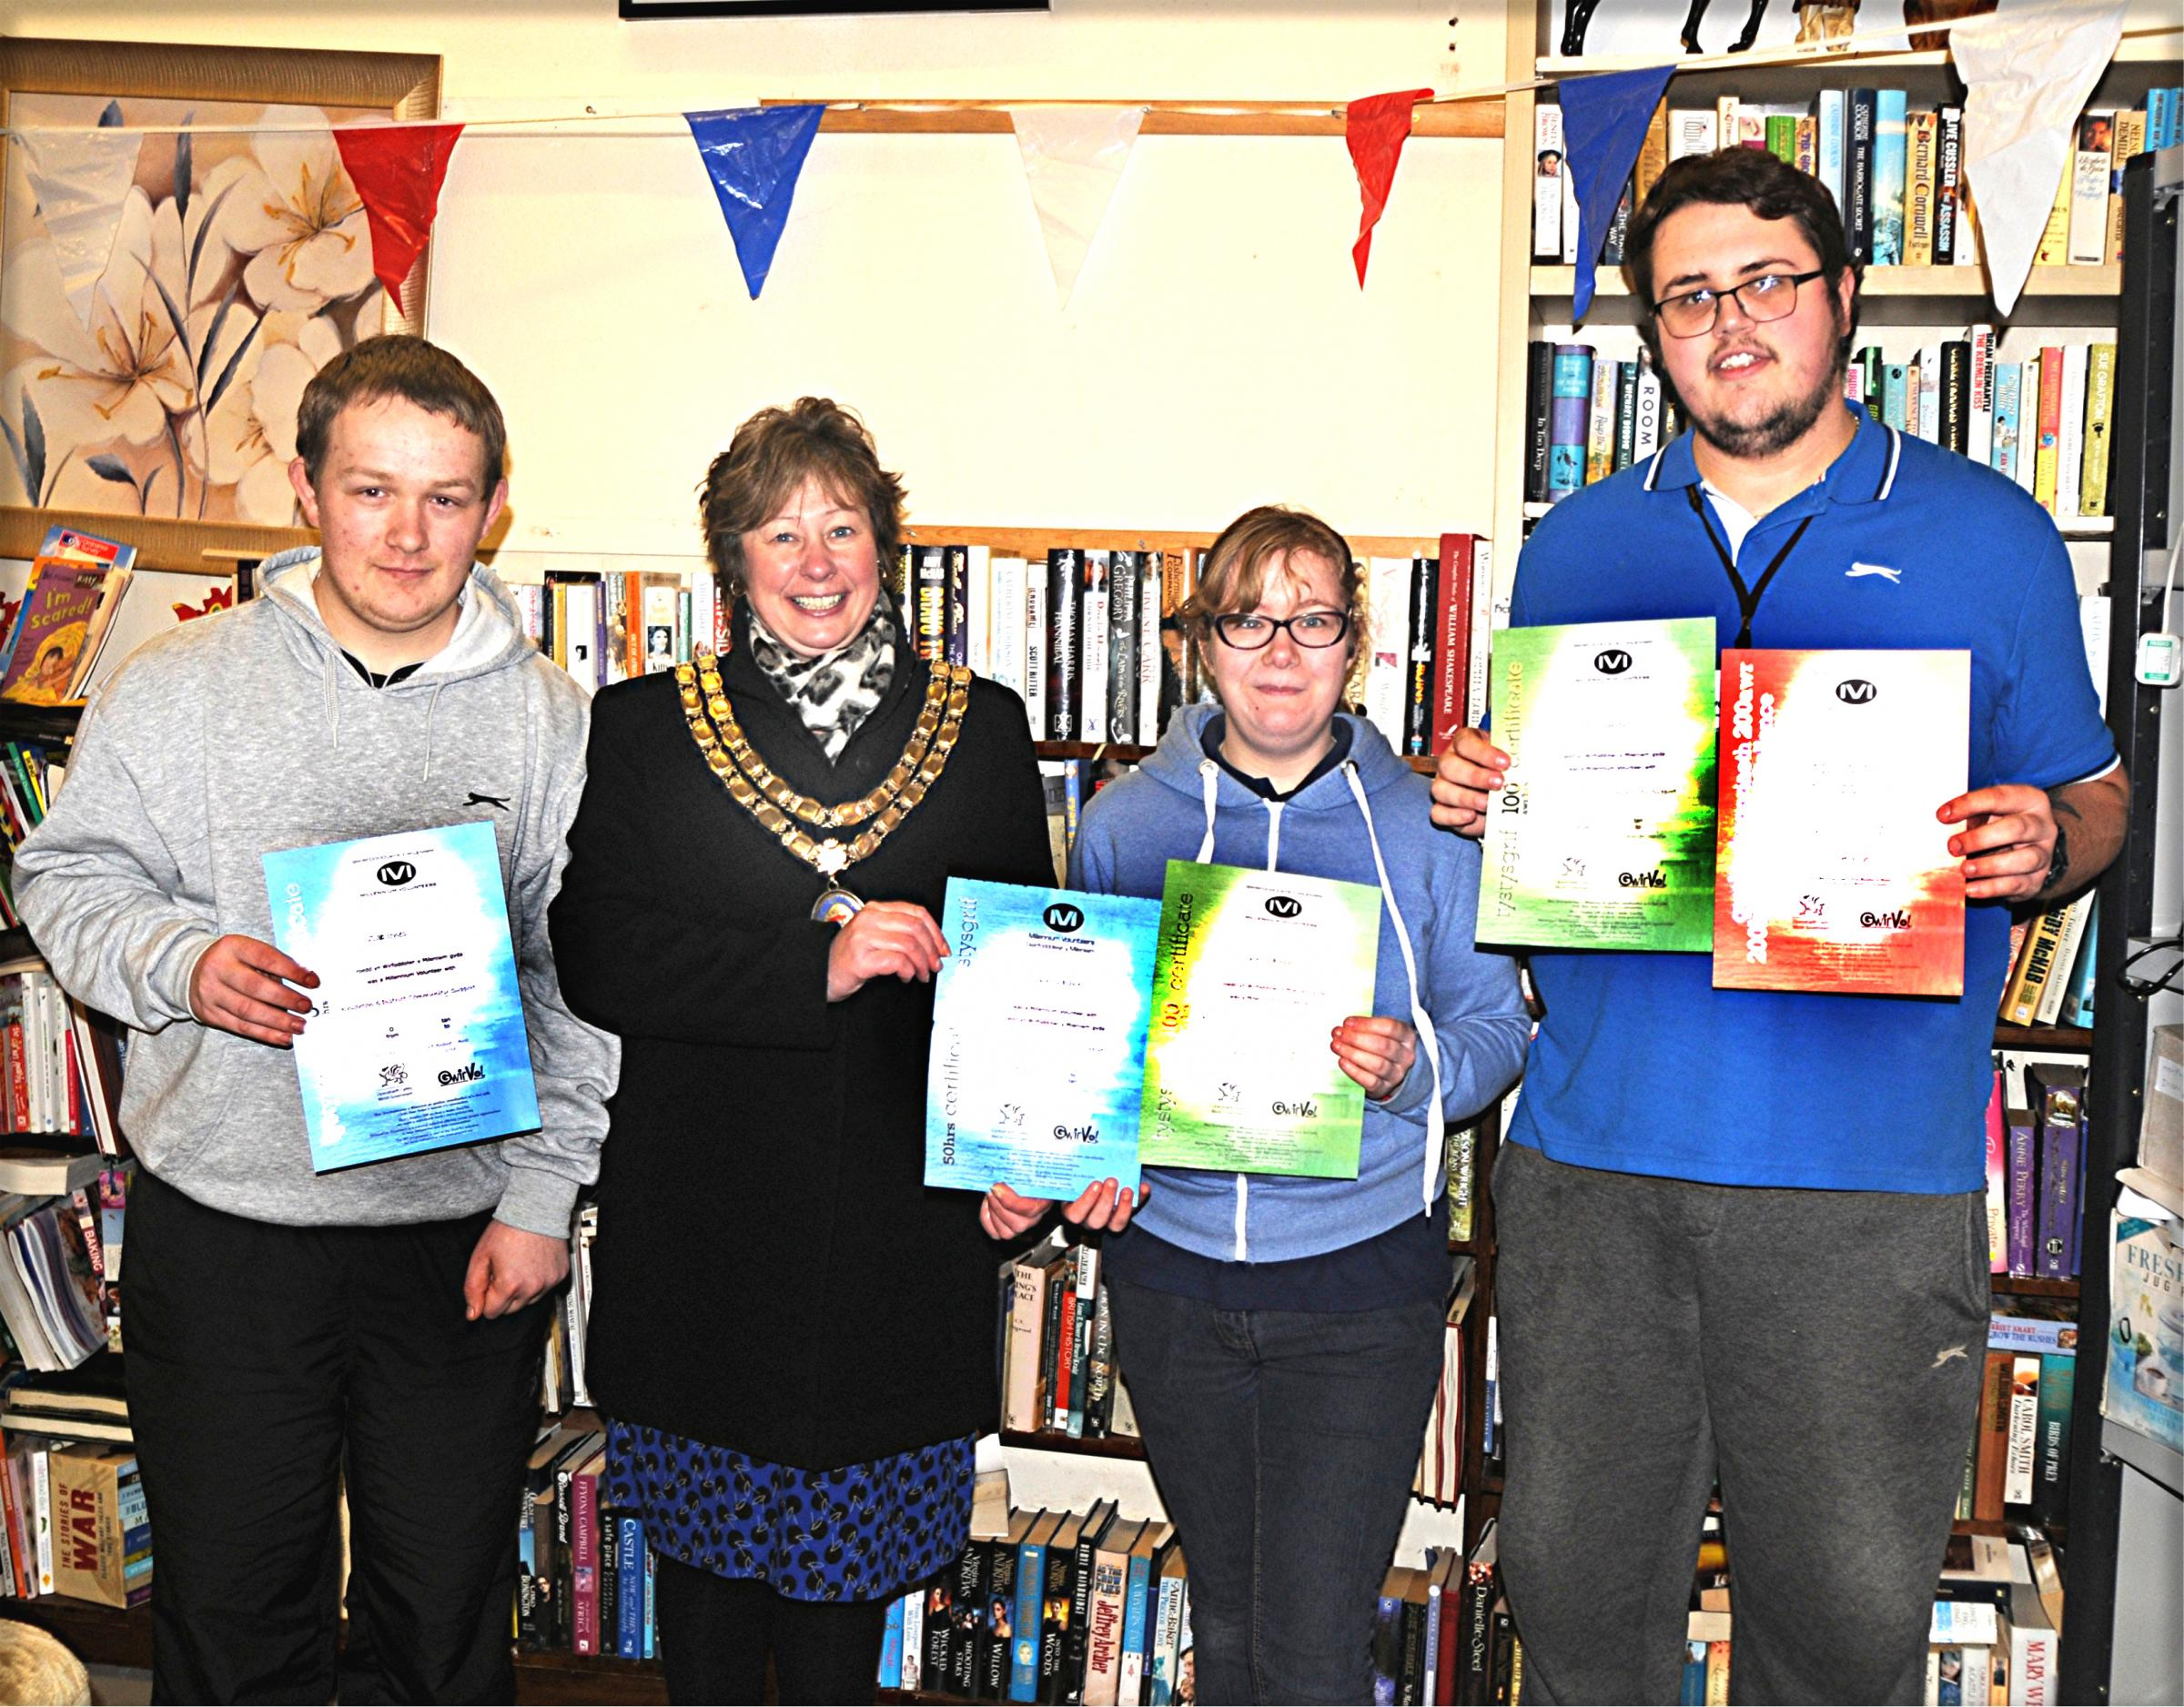 Young volunteers help the community | Hereford Times